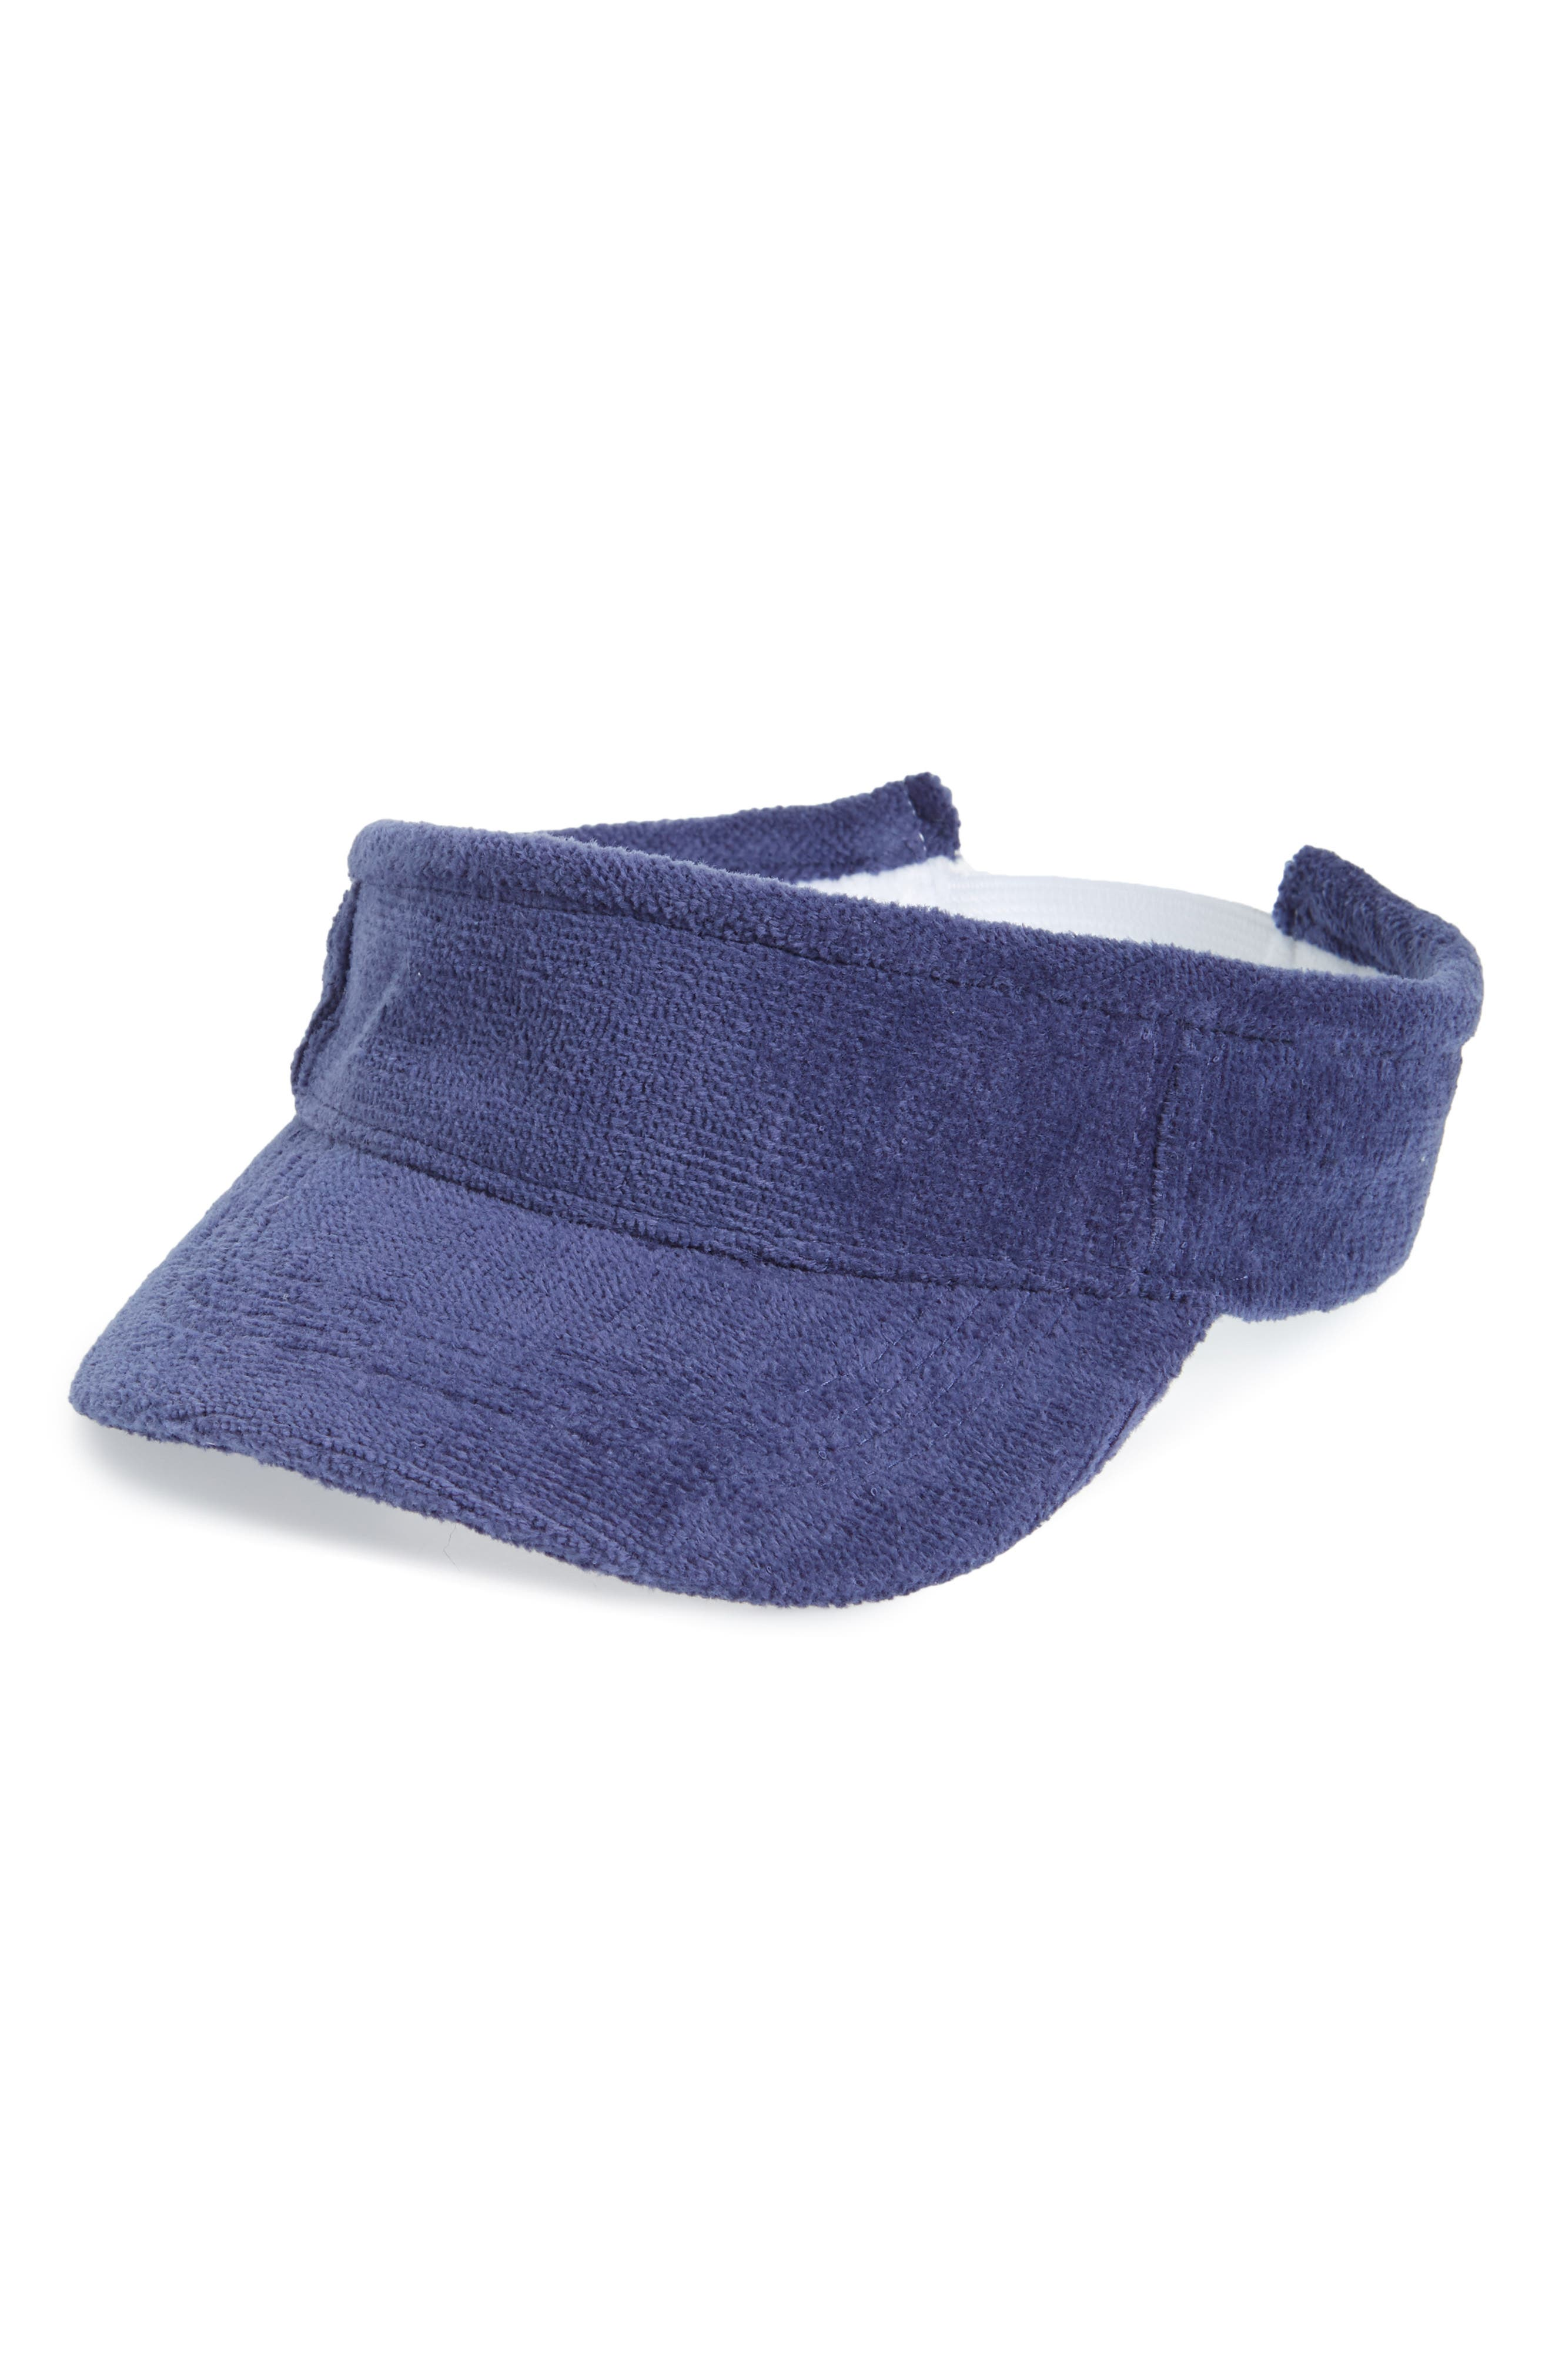 French Terry Visor,                         Main,                         color, 400